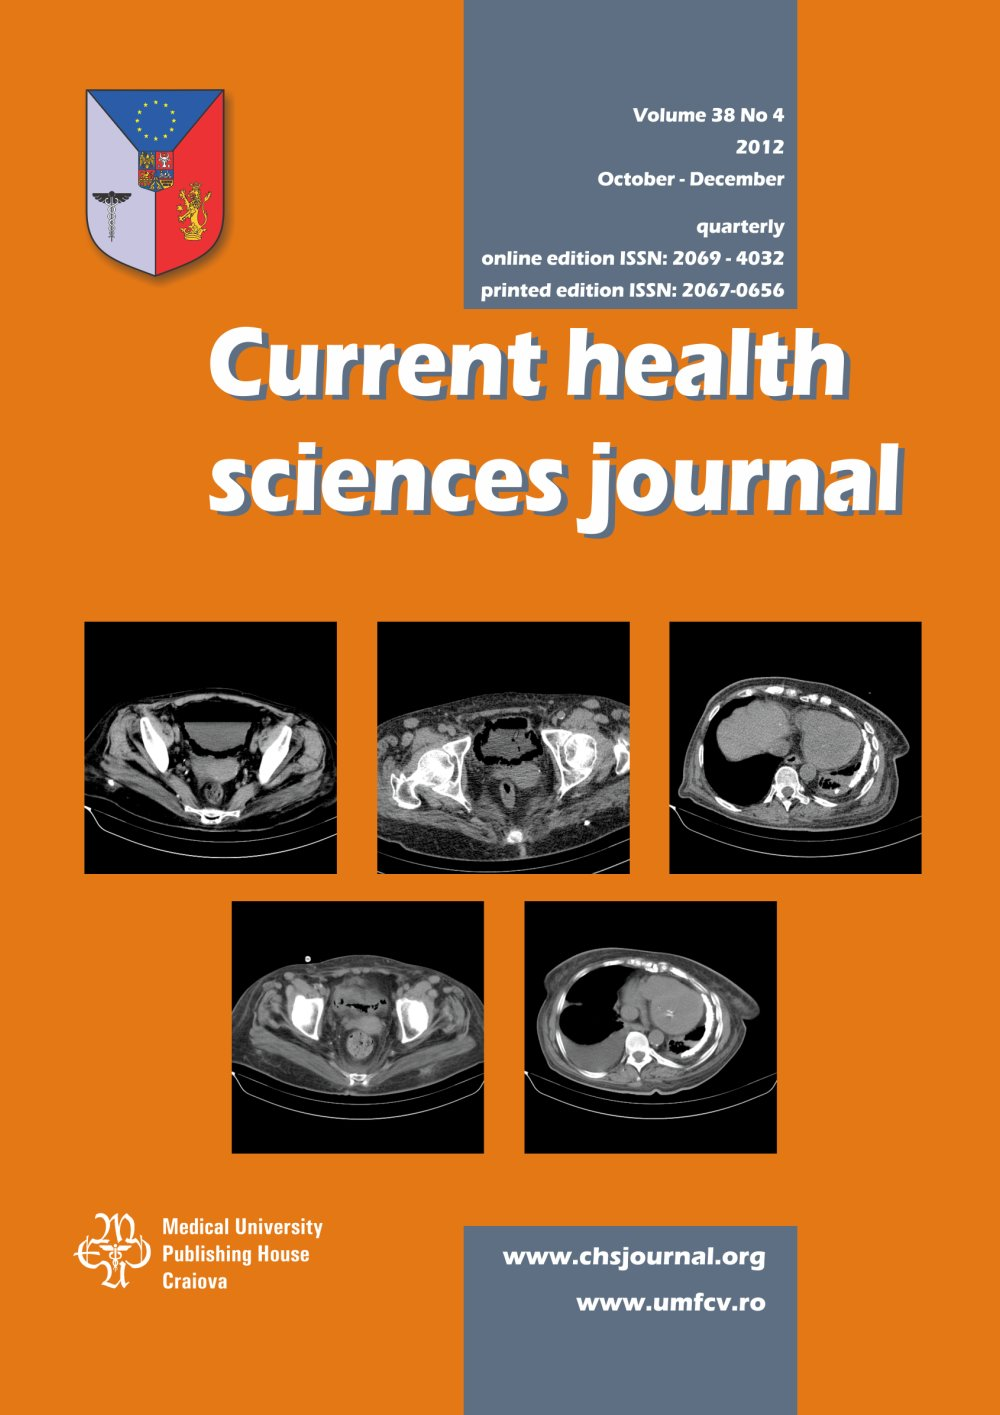 Current Health Sciences Journal, vol. 38 no. 4, 2012